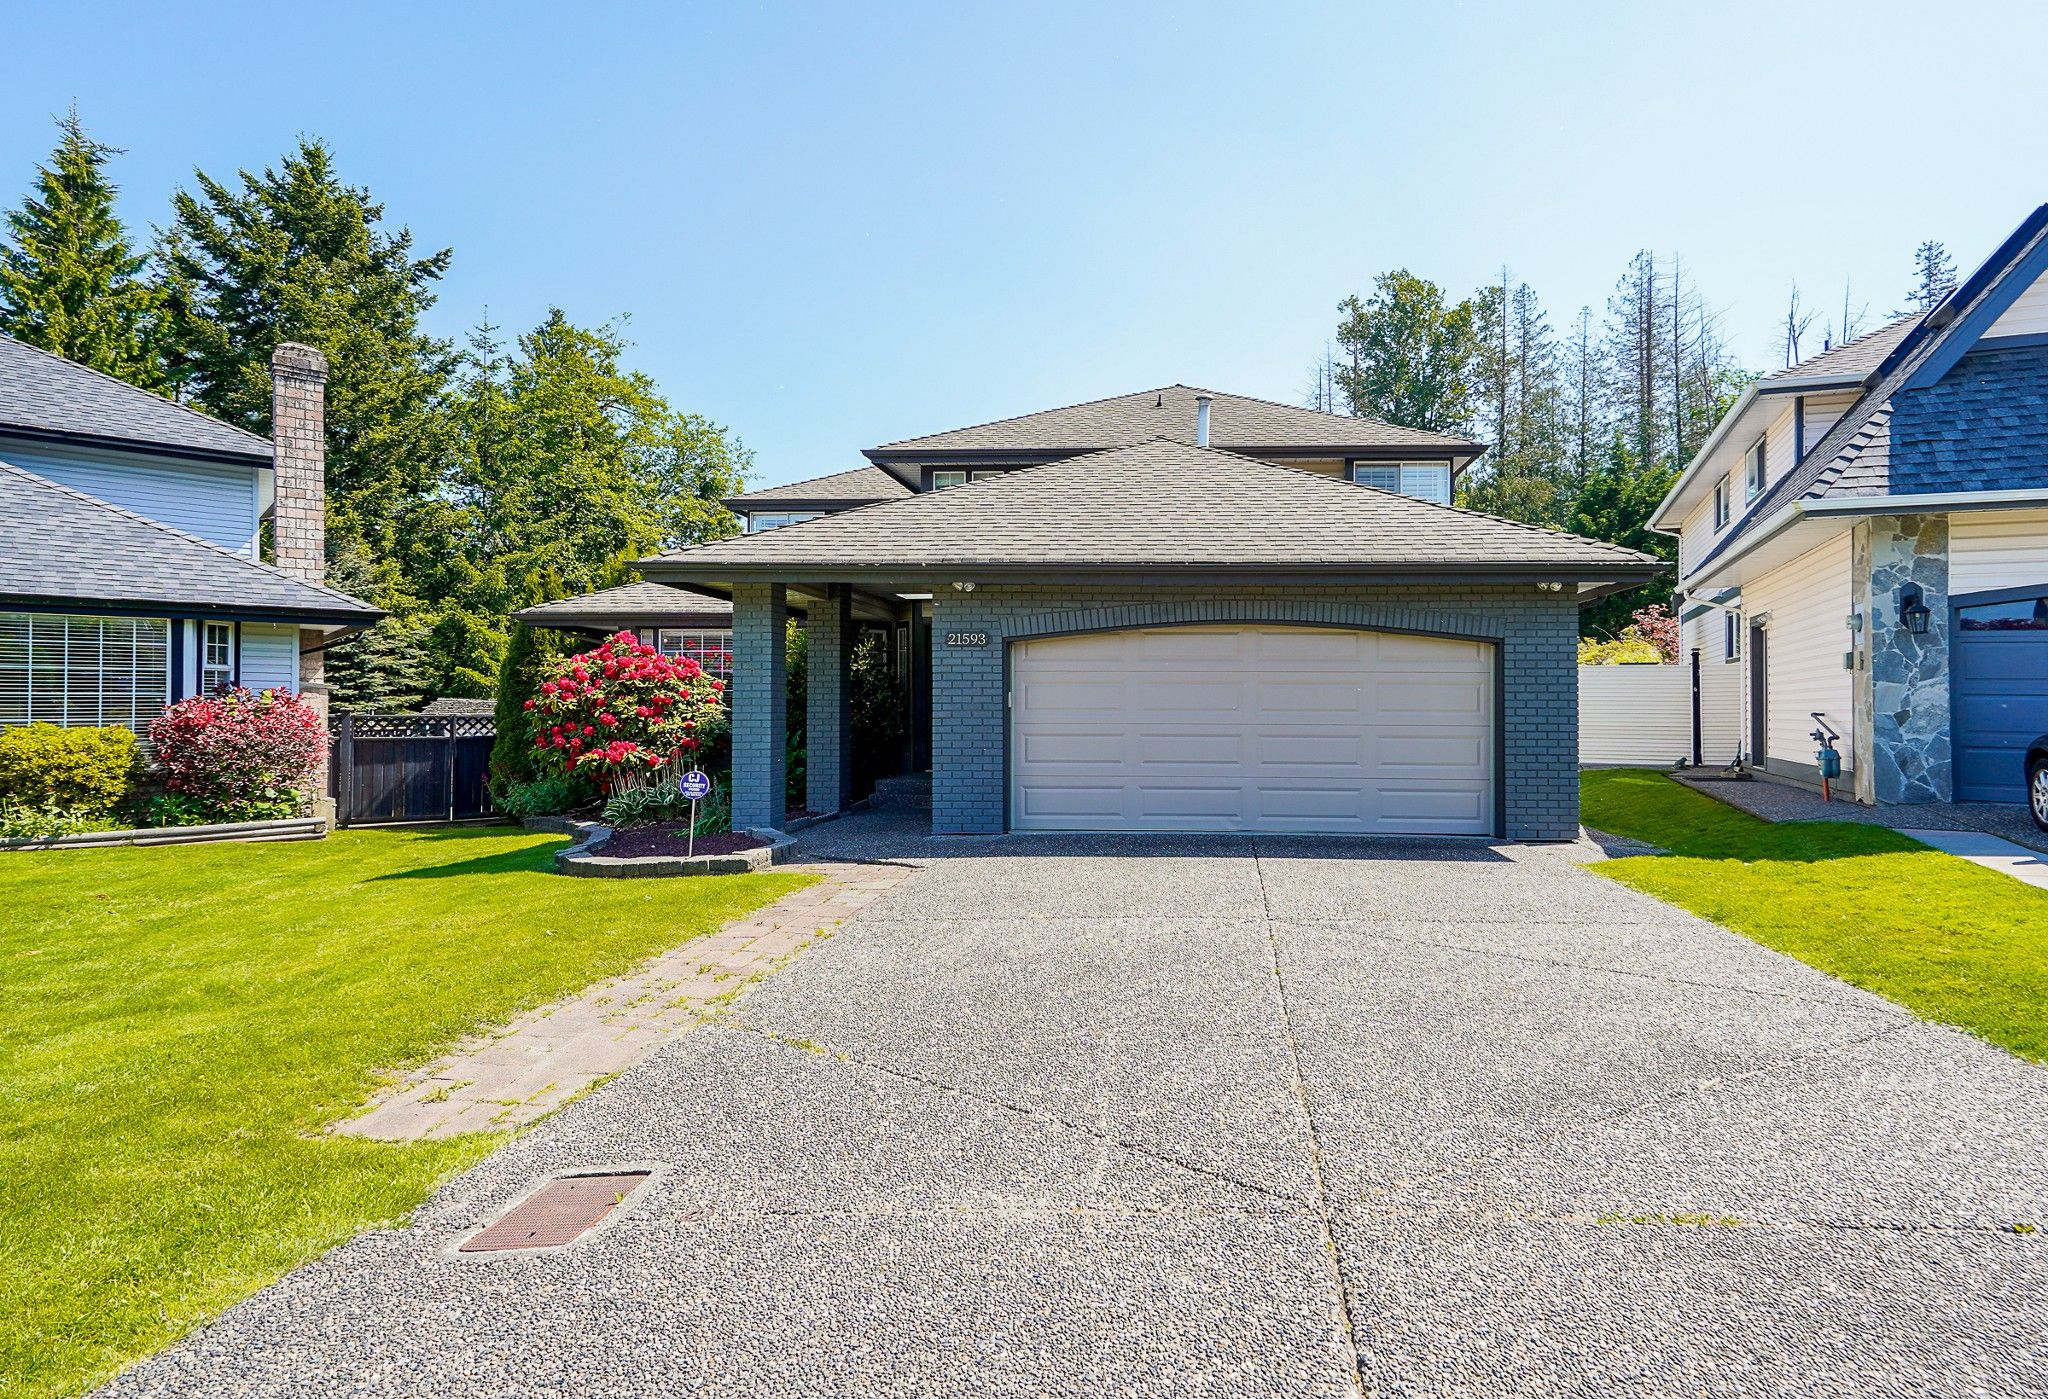 """Main Photo: 21593 86 Court in Langley: Walnut Grove House for sale in """"FOREST HILLS"""" : MLS®# R2584648"""